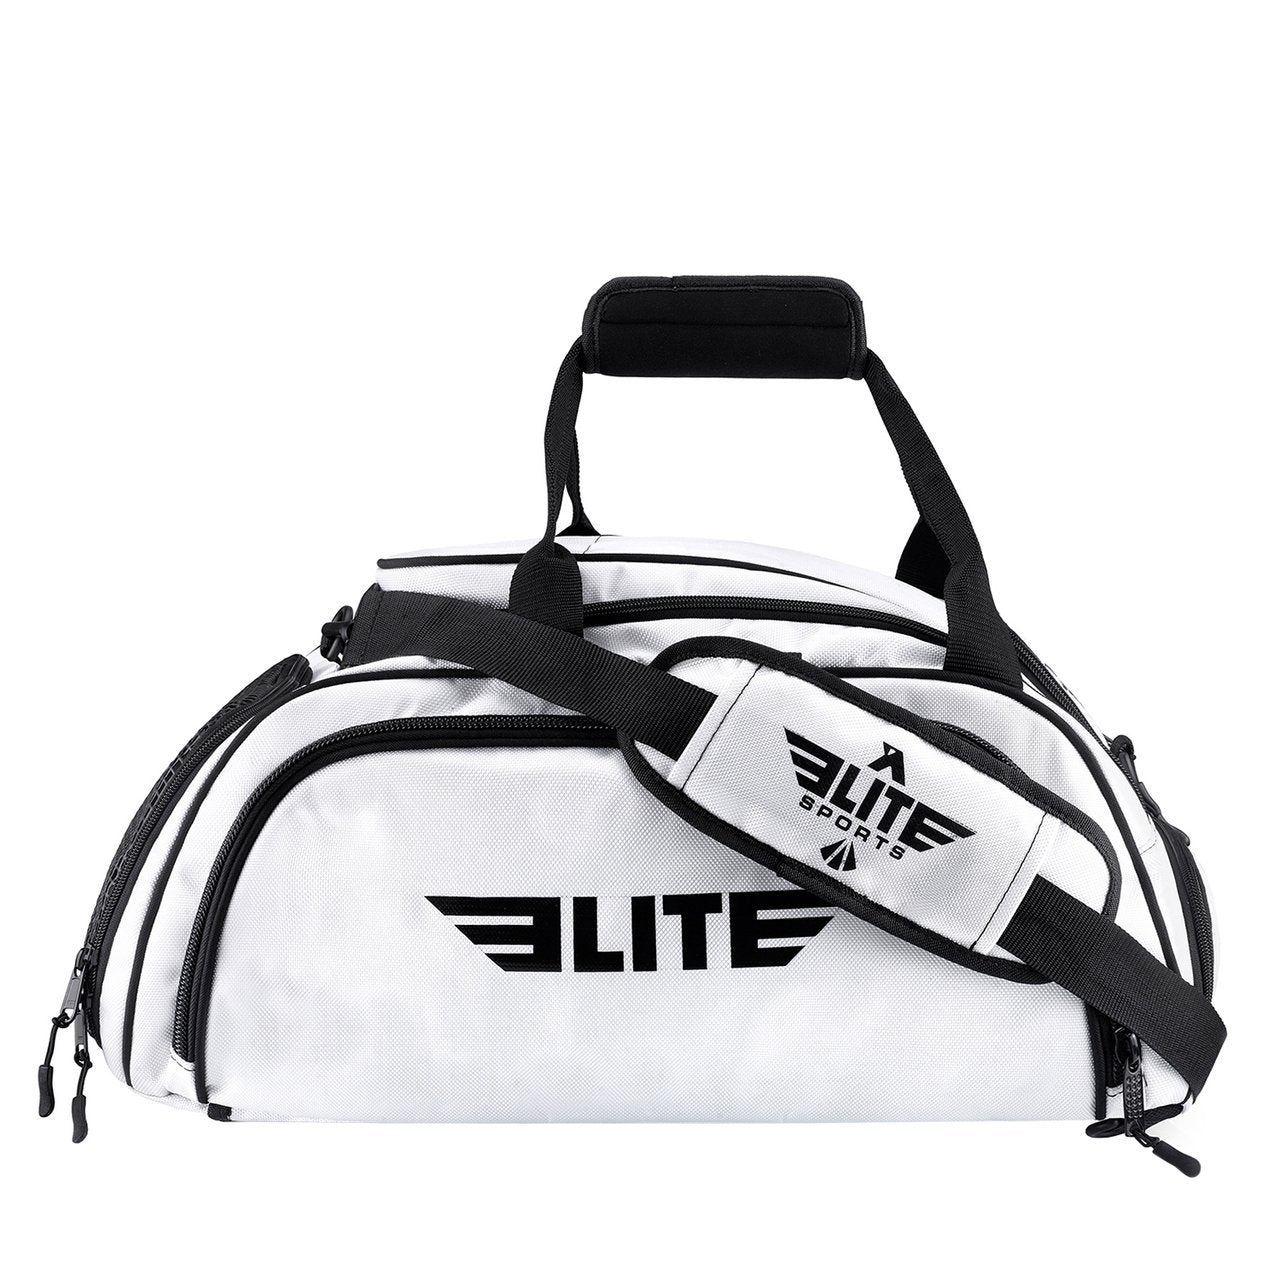 Elite Sports Warrior Series White Medium Duffel Karate Gear Gym Bag & Backpack